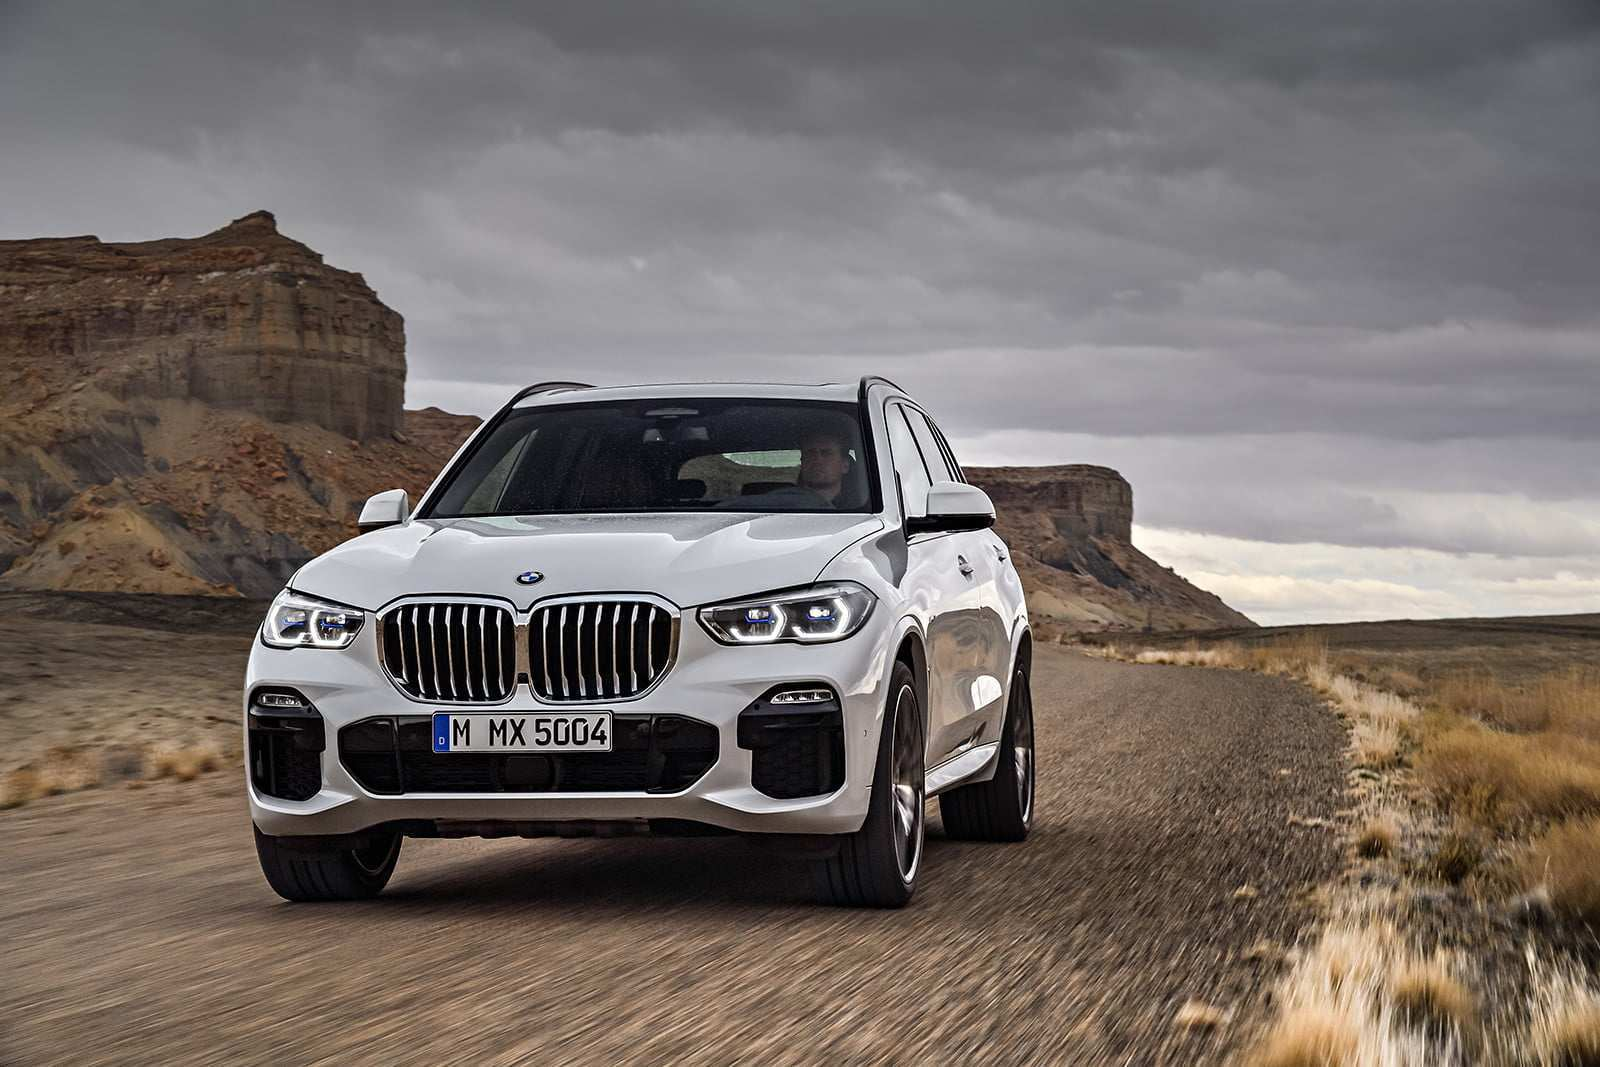 72 New The Bmw X5 2019 Launch Date Release Date Photos for The Bmw X5 2019 Launch Date Release Date